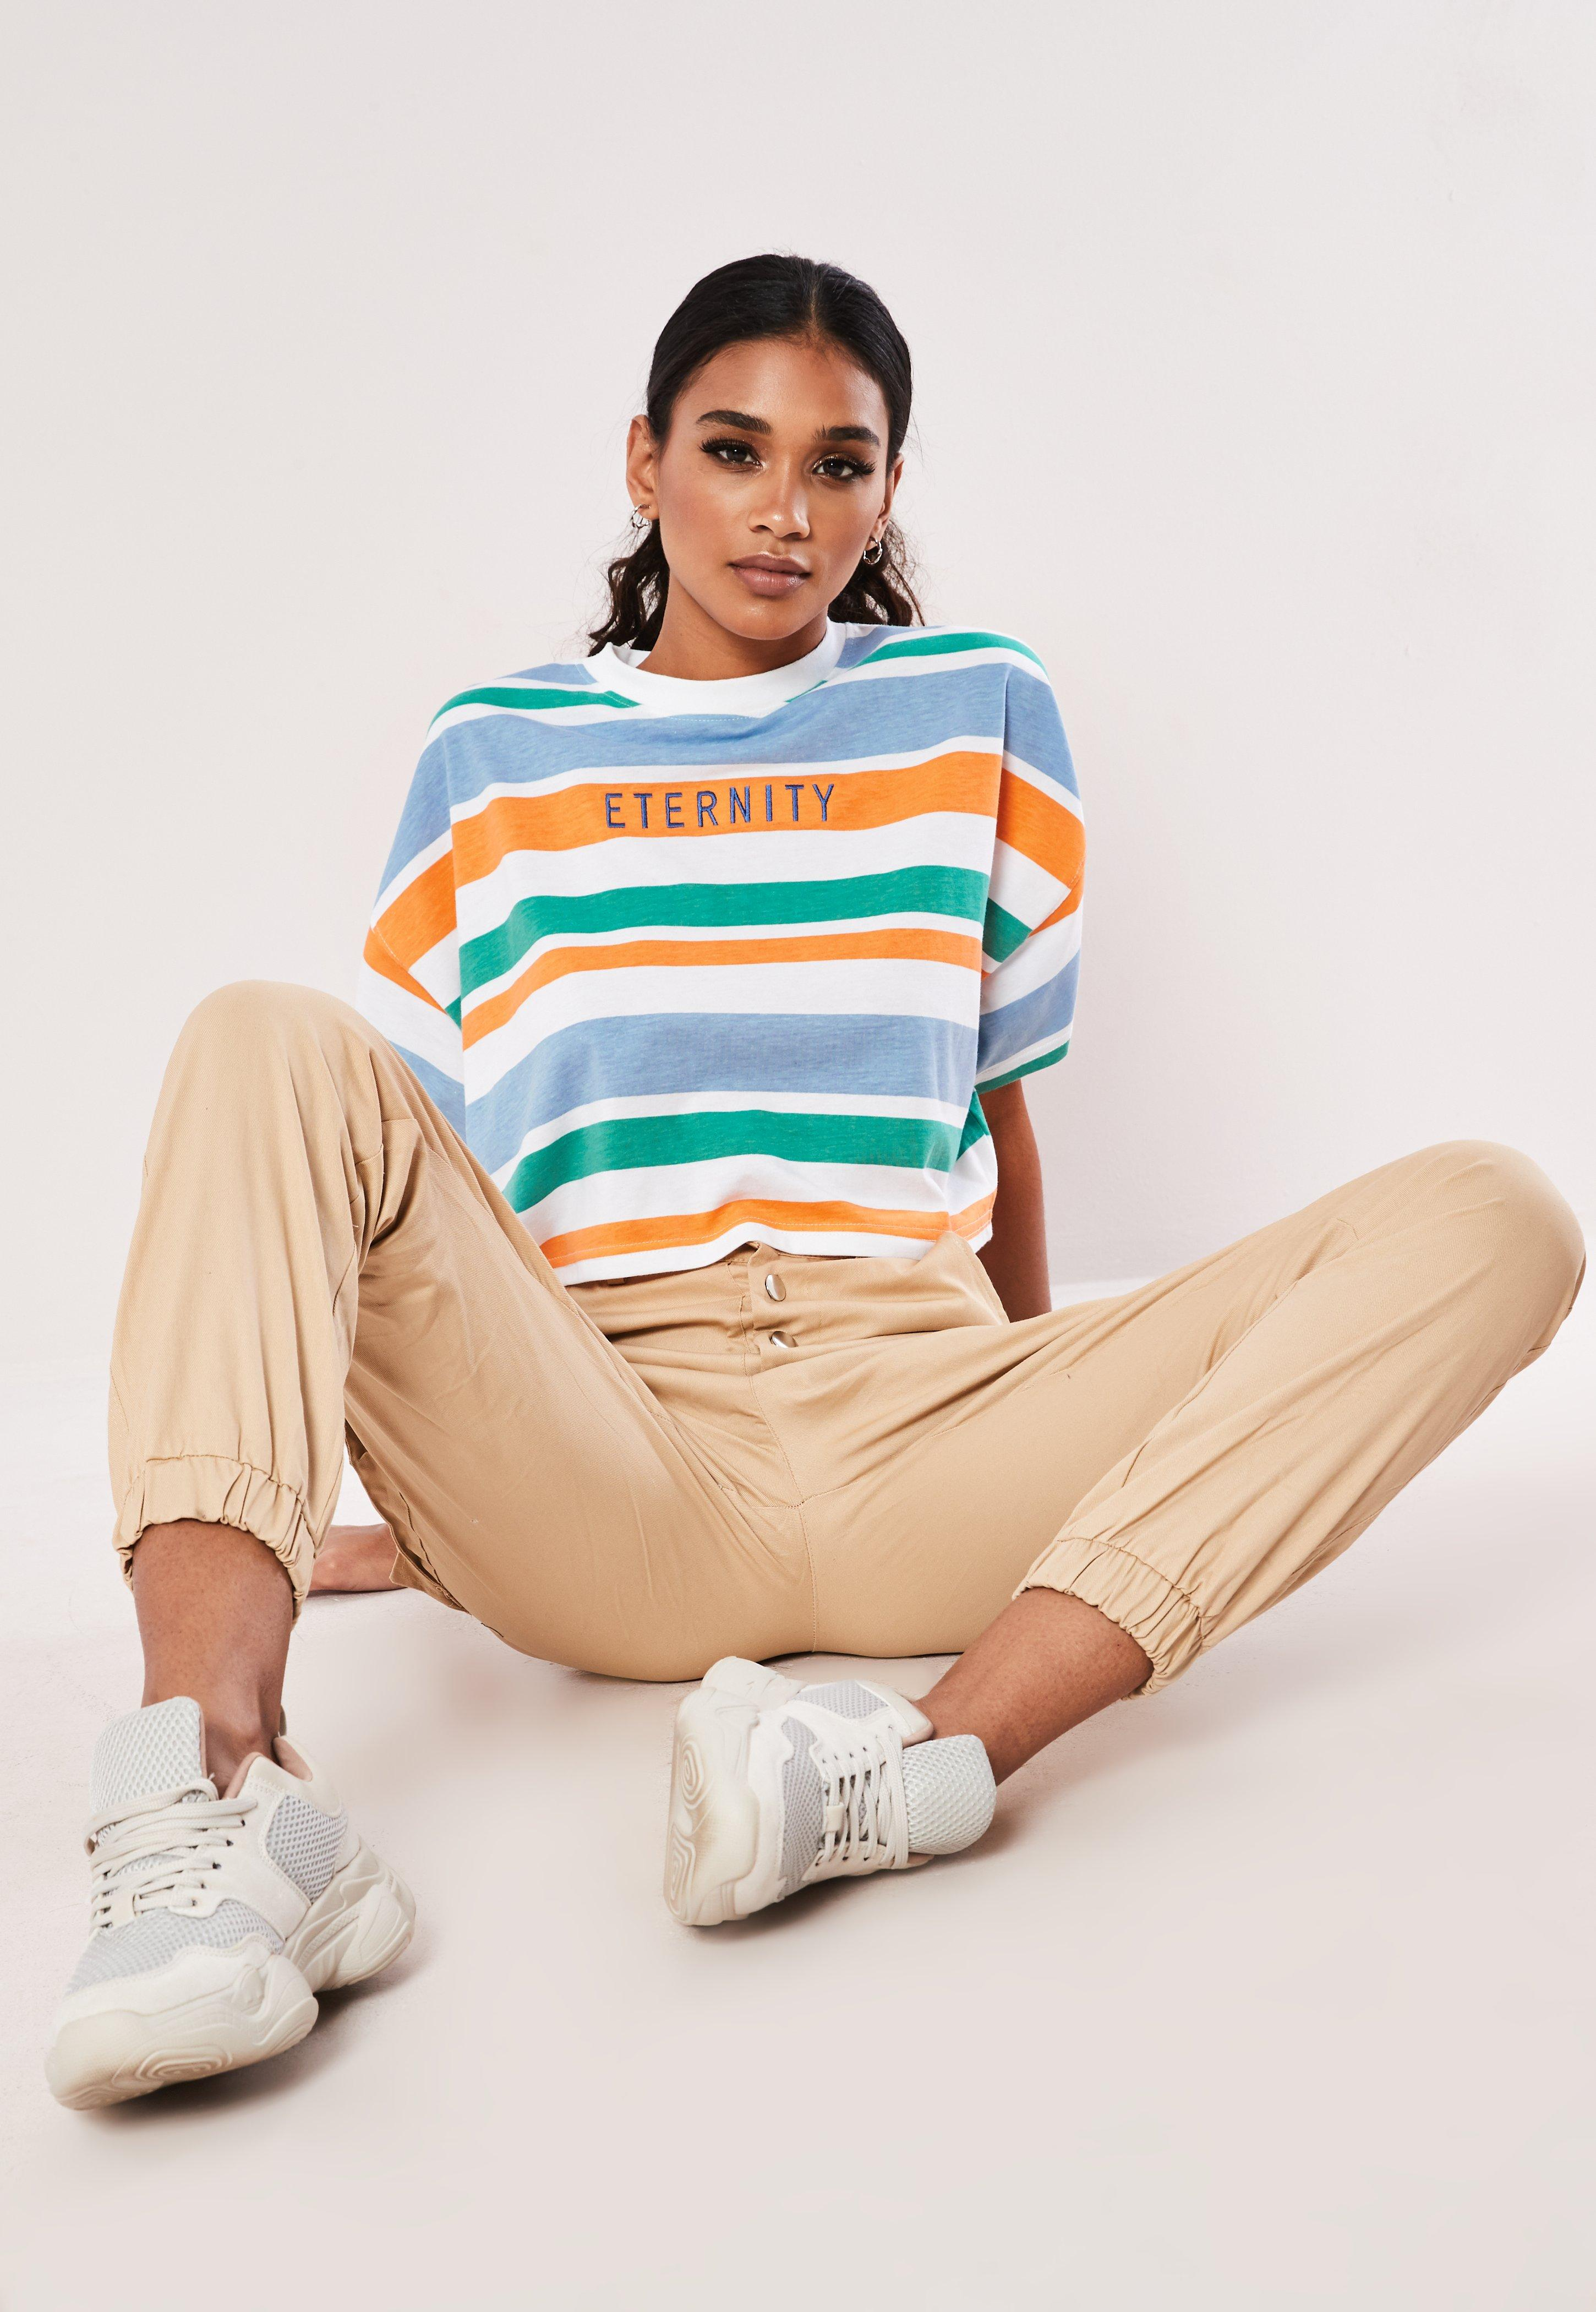 Blue Stripe Eternity Oversized Crop Top by Missguided